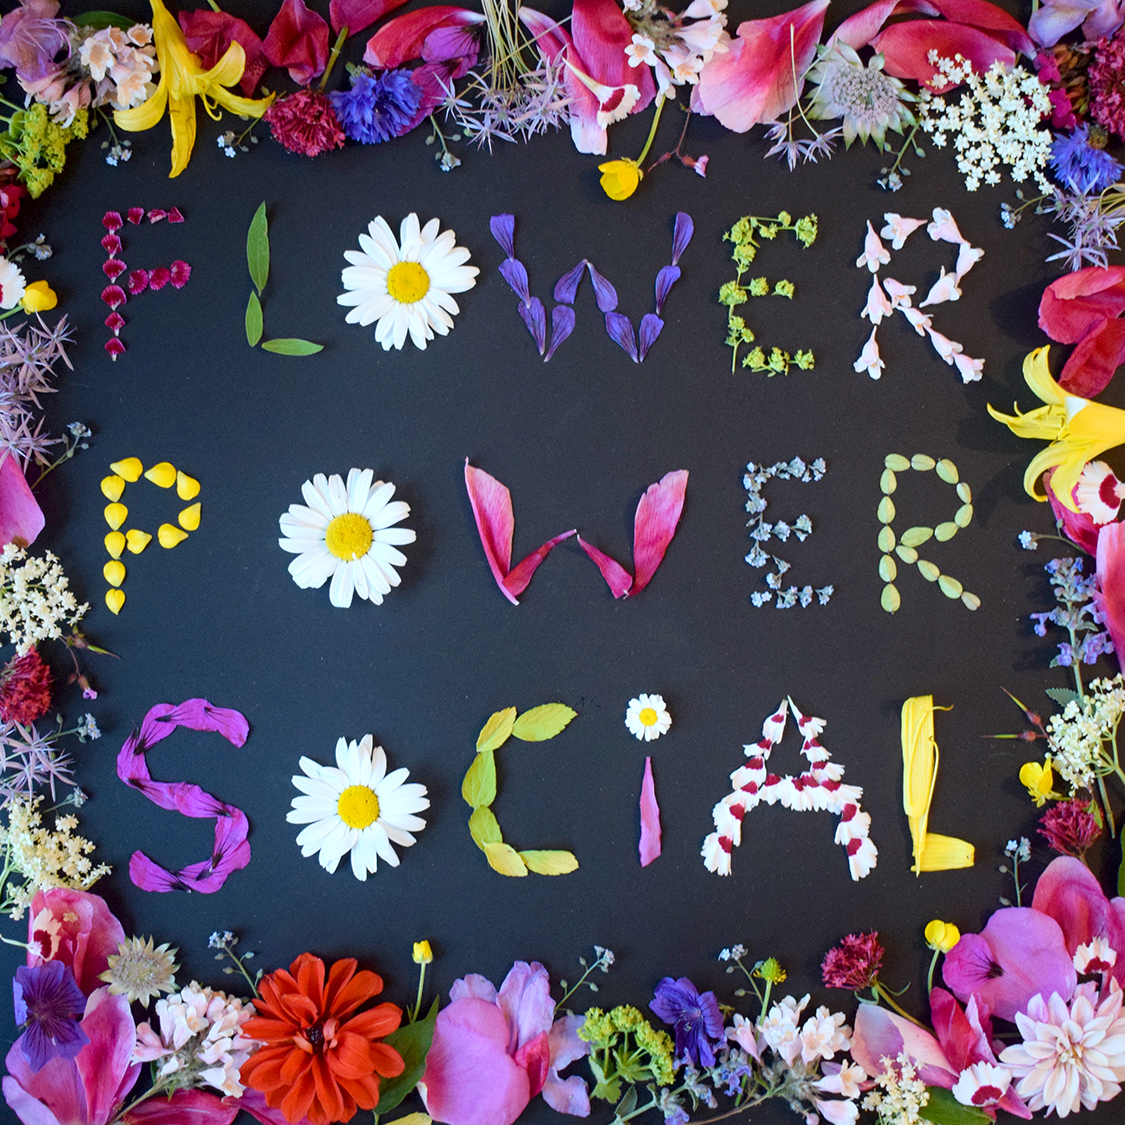 SAT 30TH JUNE -  FLOWER POWER SOCIAL  - YORK